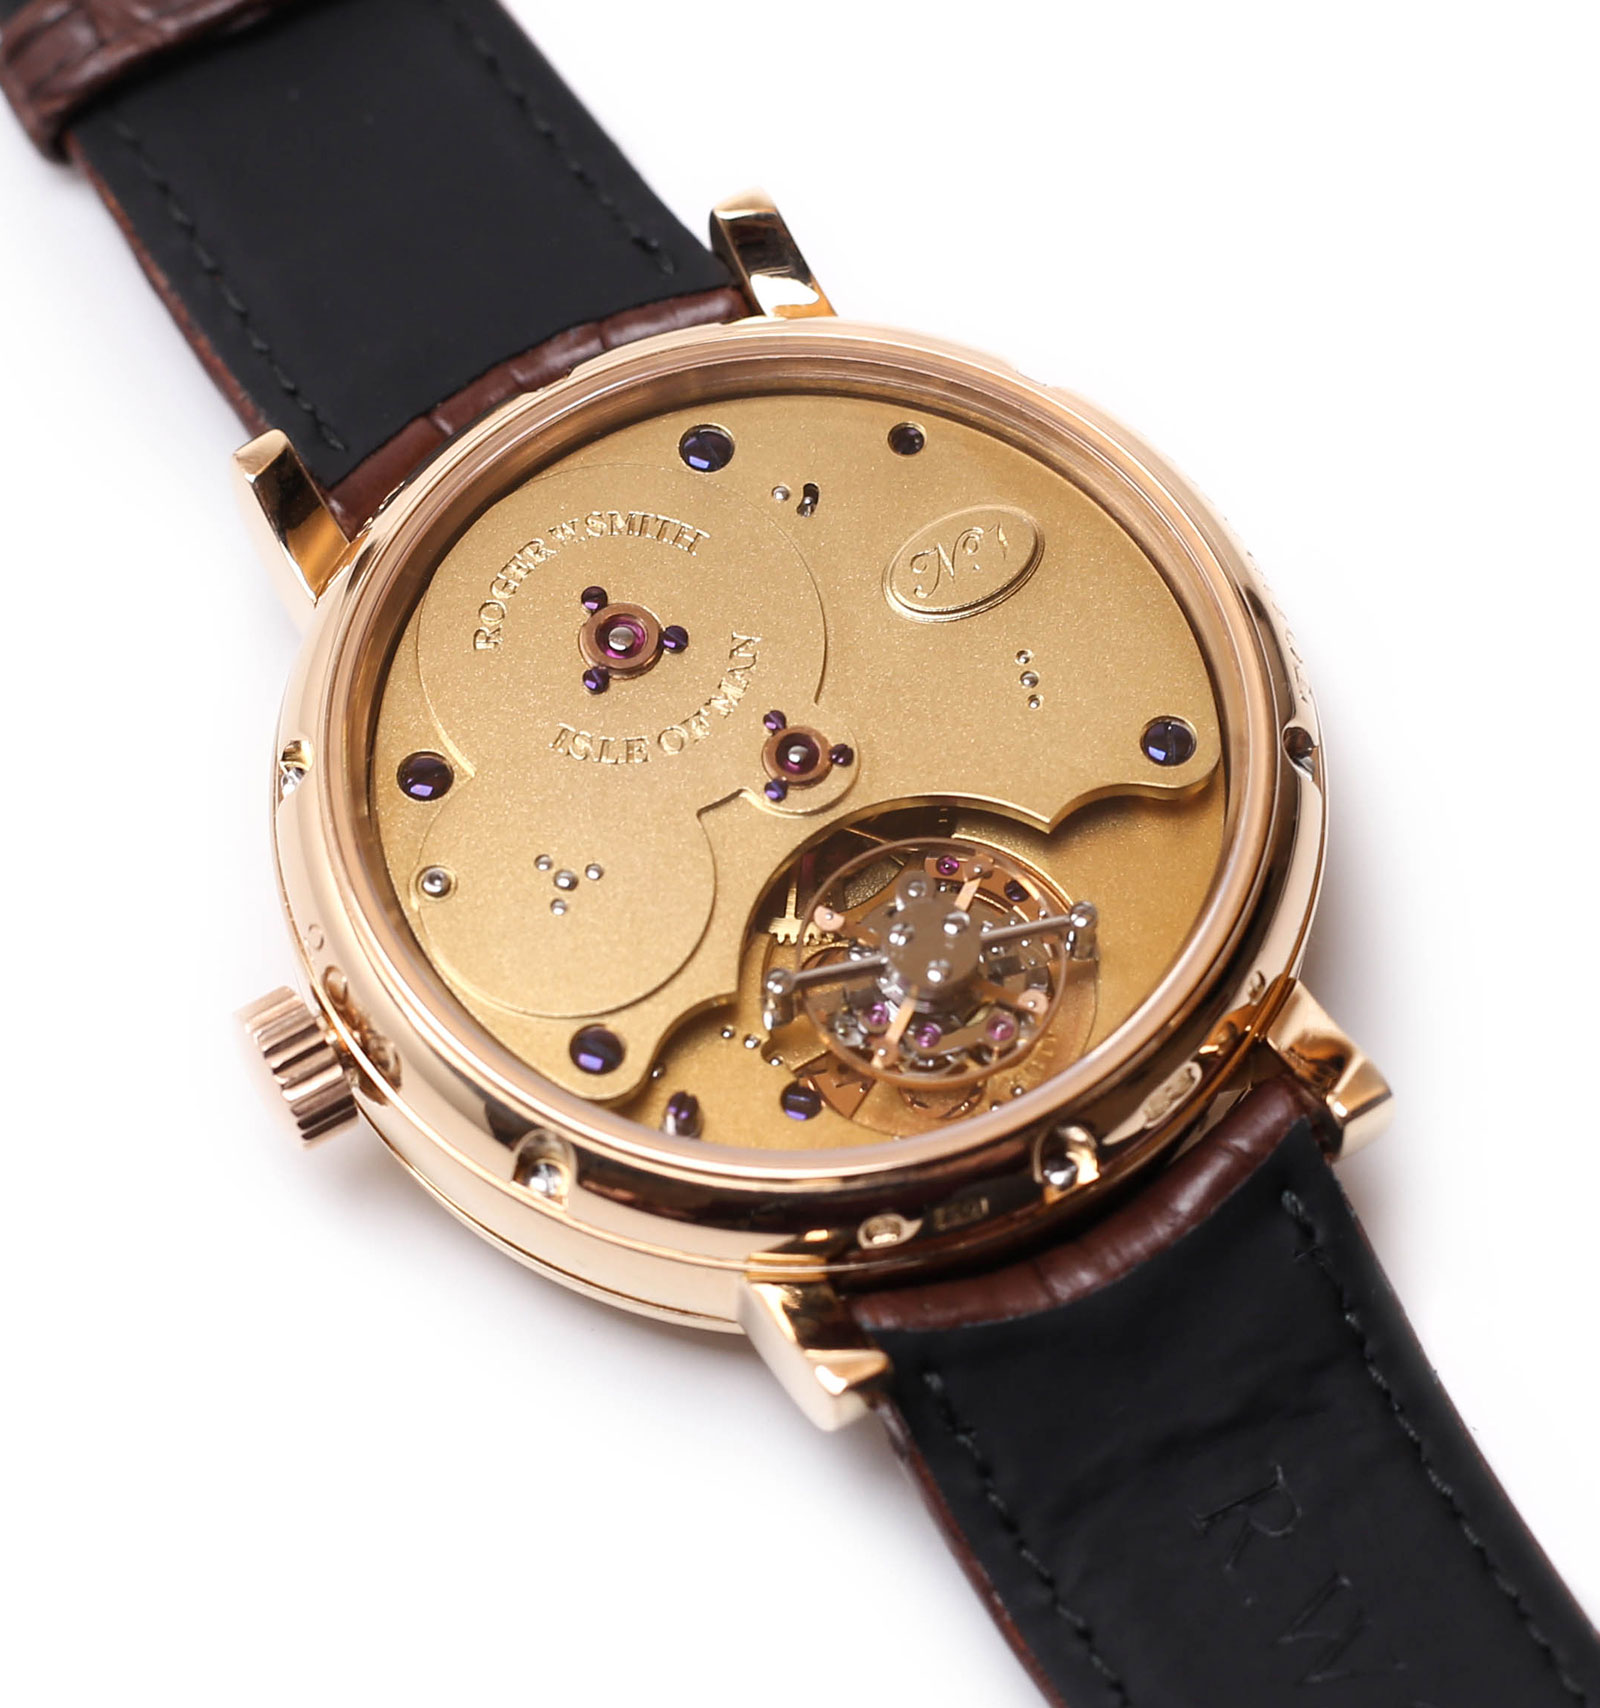 Roger Smith Tourbillon no.1-3